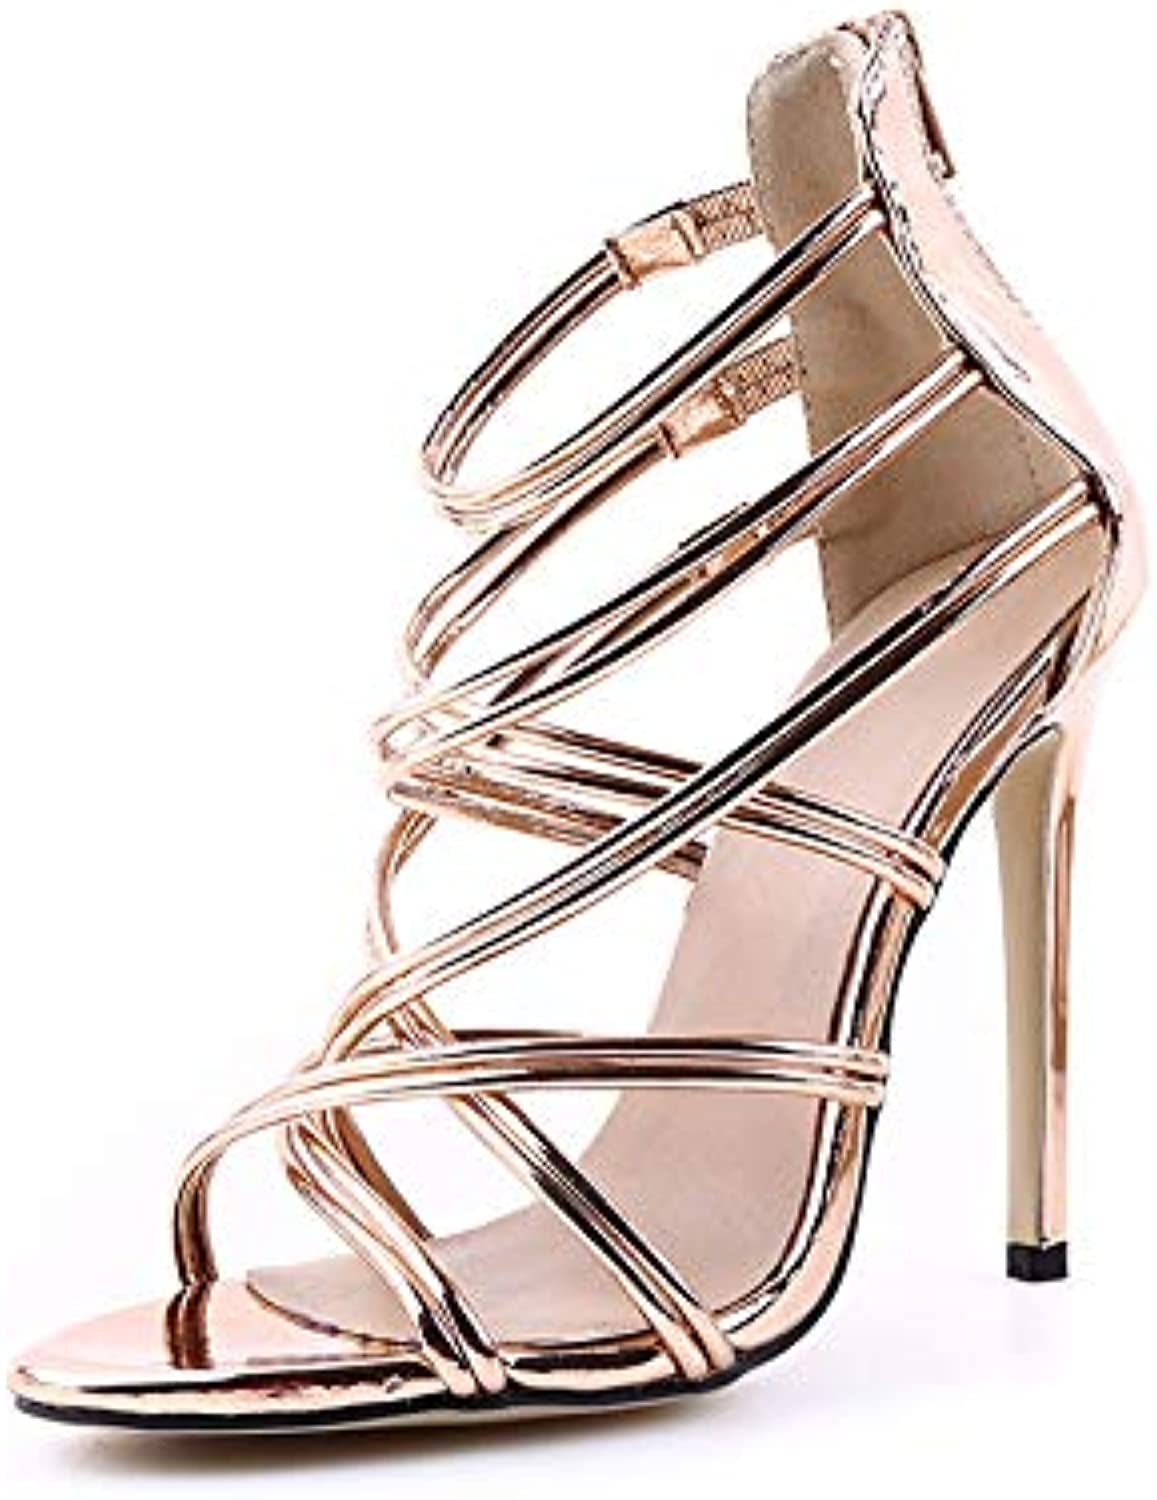 Women's Sandals High Heel Cut Out Ankle Credver Strappy Heel Zipper Stiletto shoes for Lady Pointed Open Toe Pumps shoes for Night Club Party